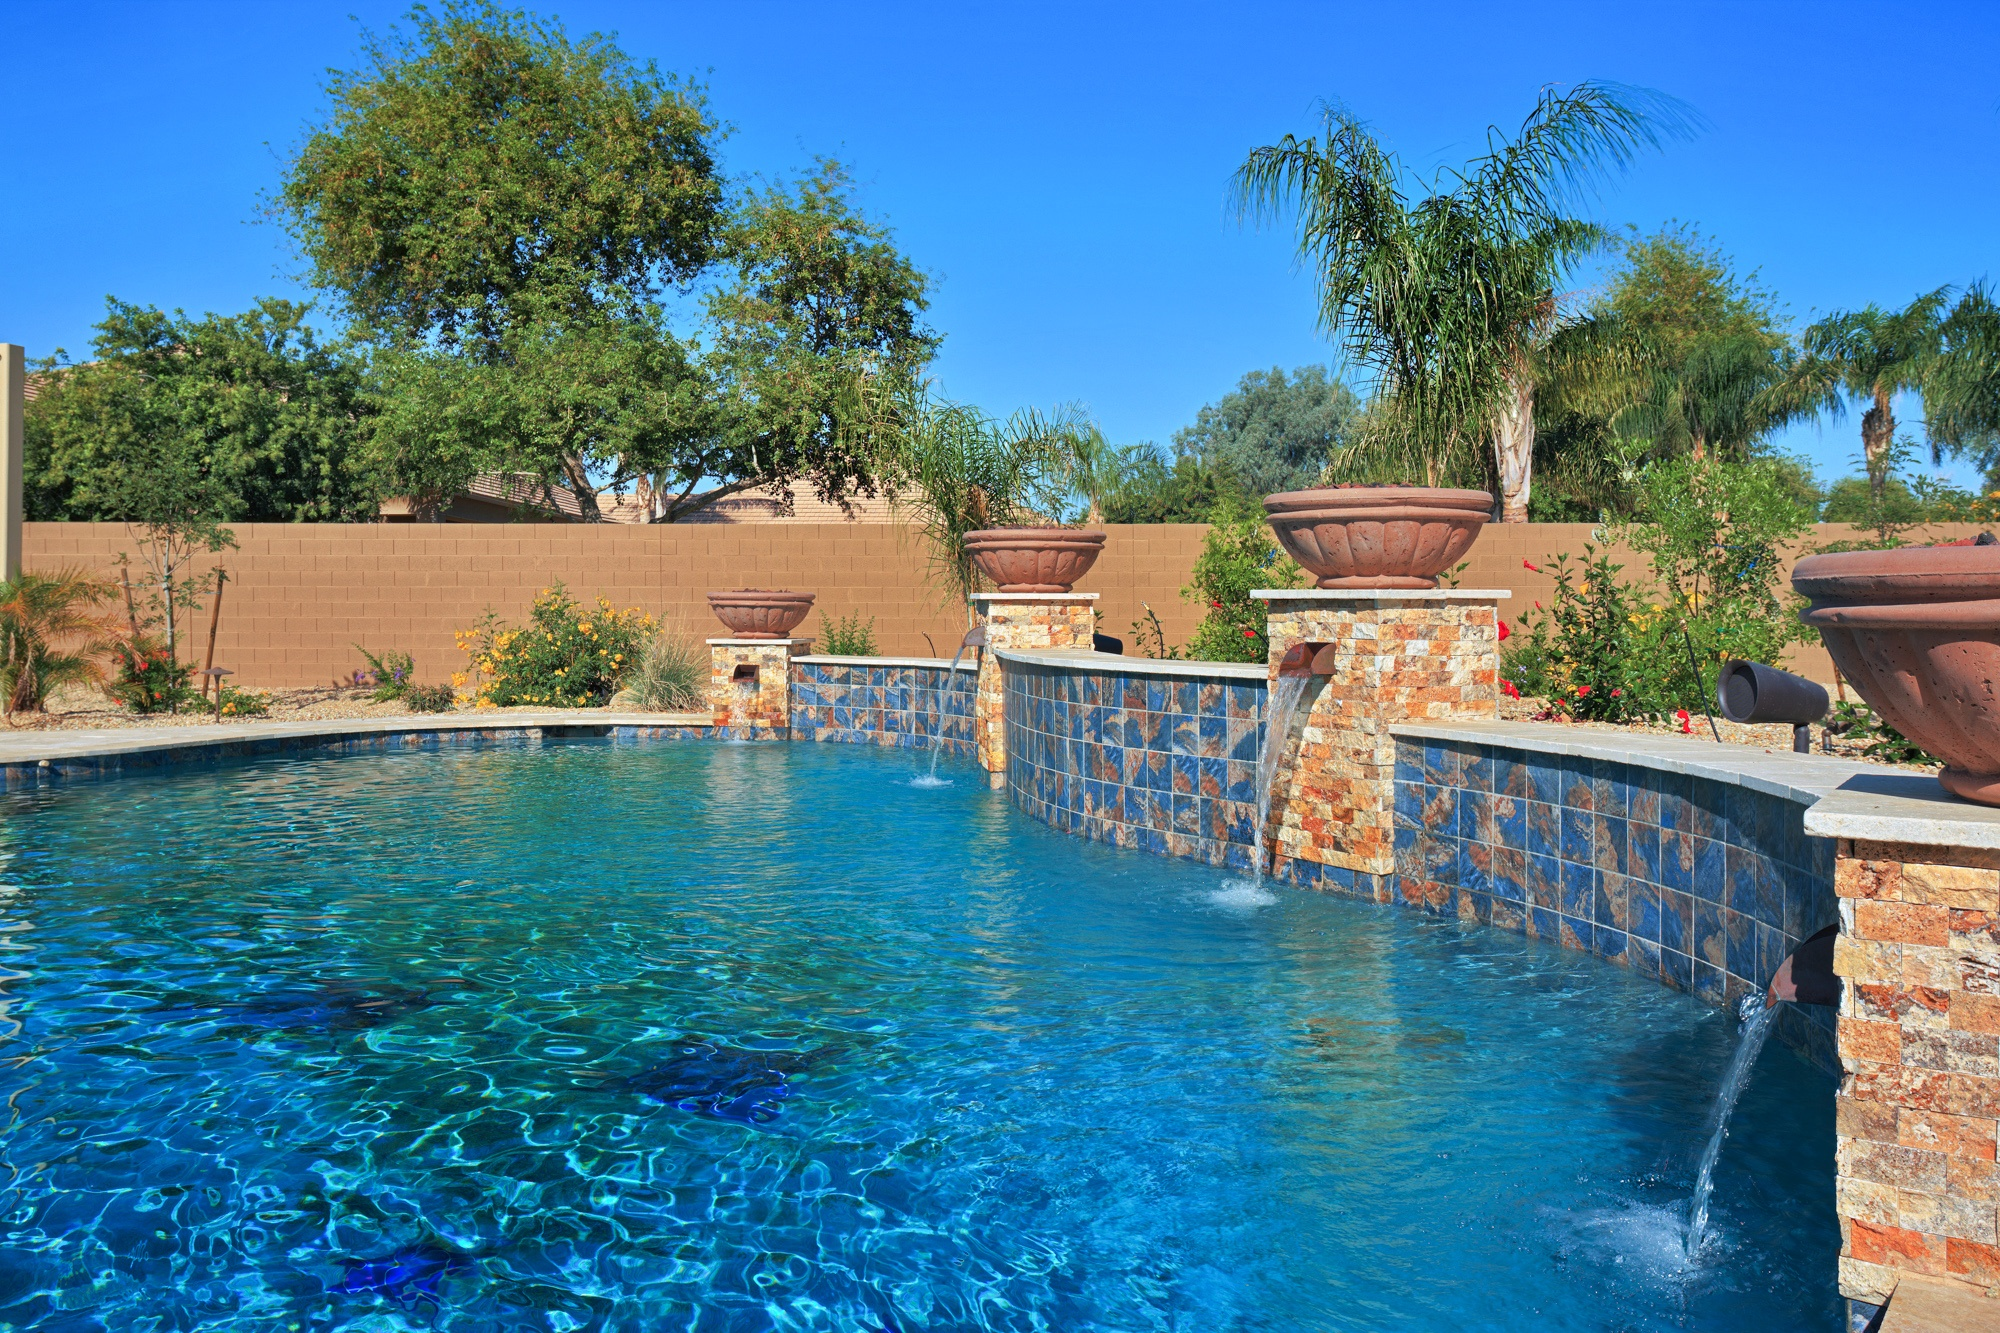 Pool Design Spotlight: An All-Season Oasis